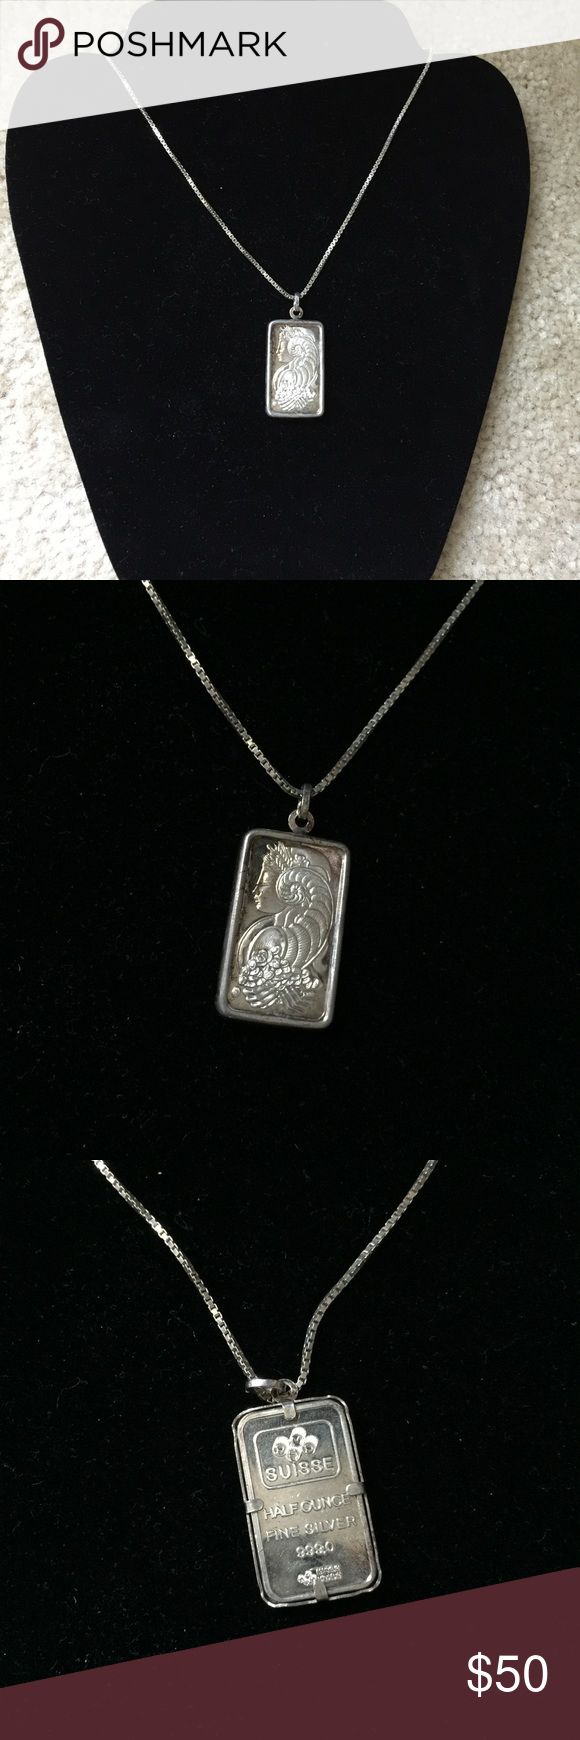 """Fine silver necklace with ingot Beautiful 925 stamped necklace with fine silver suisse half ounce of silver, 999.0.  Necklace measures 29"""" and ingot is 1.25"""" x .75"""".  Price firm.  Will be cleaned before I send it out. Jewelry Necklaces"""